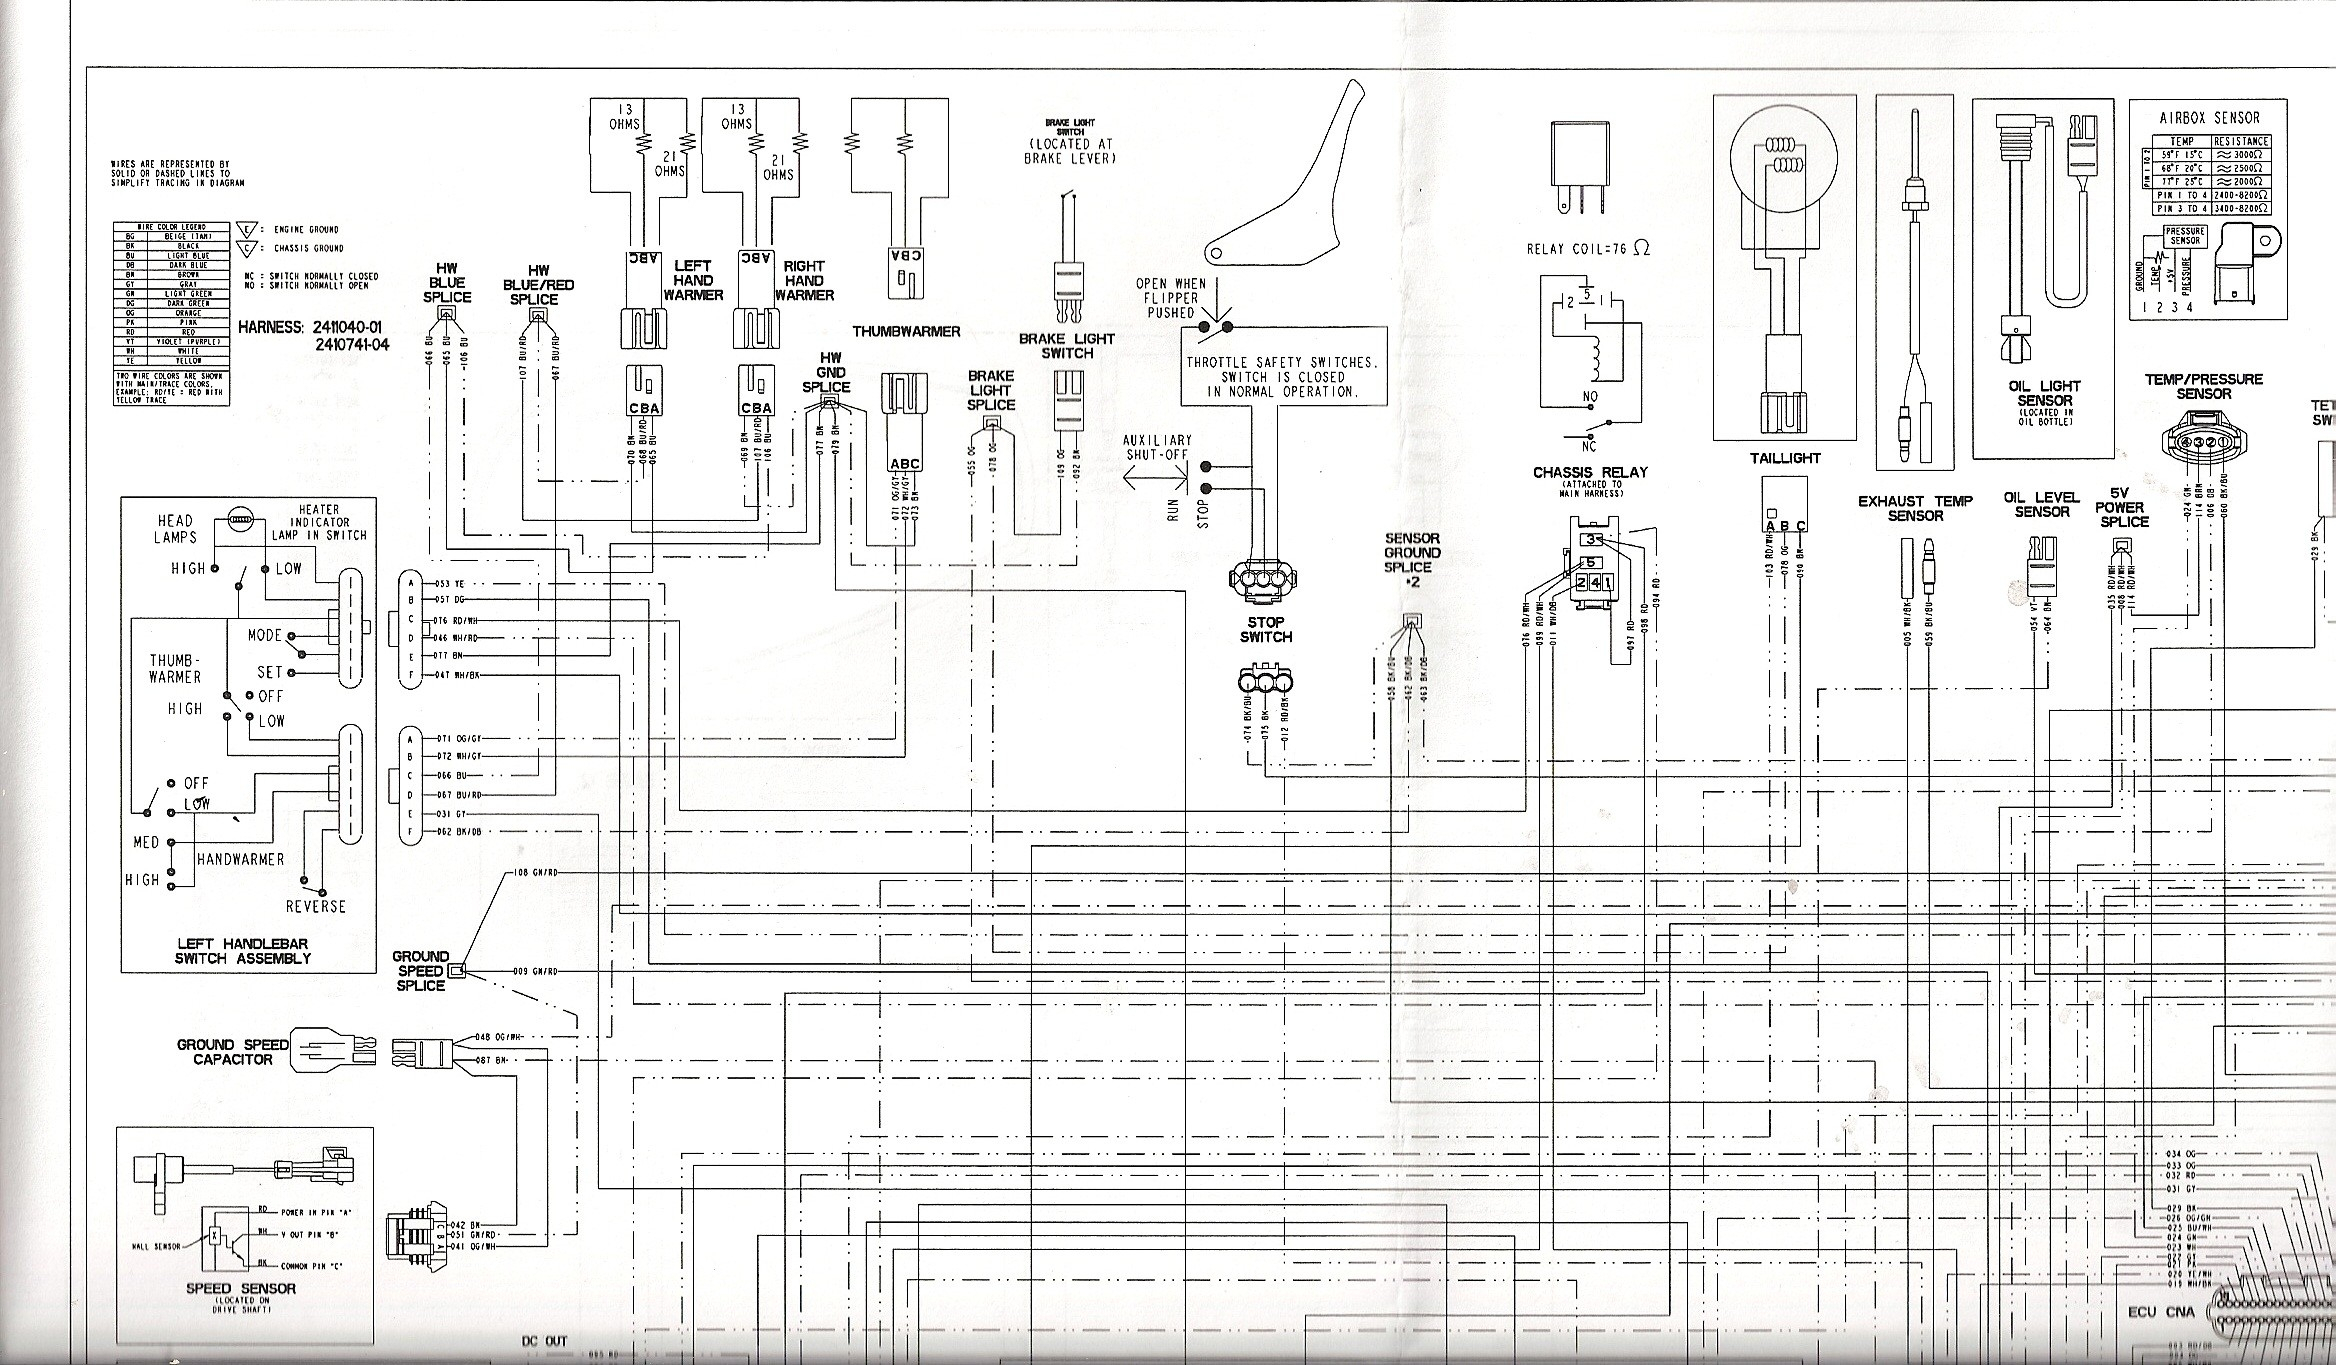 [DIAGRAM] Polaris Rzr Electrical Diagram FULL Version HD